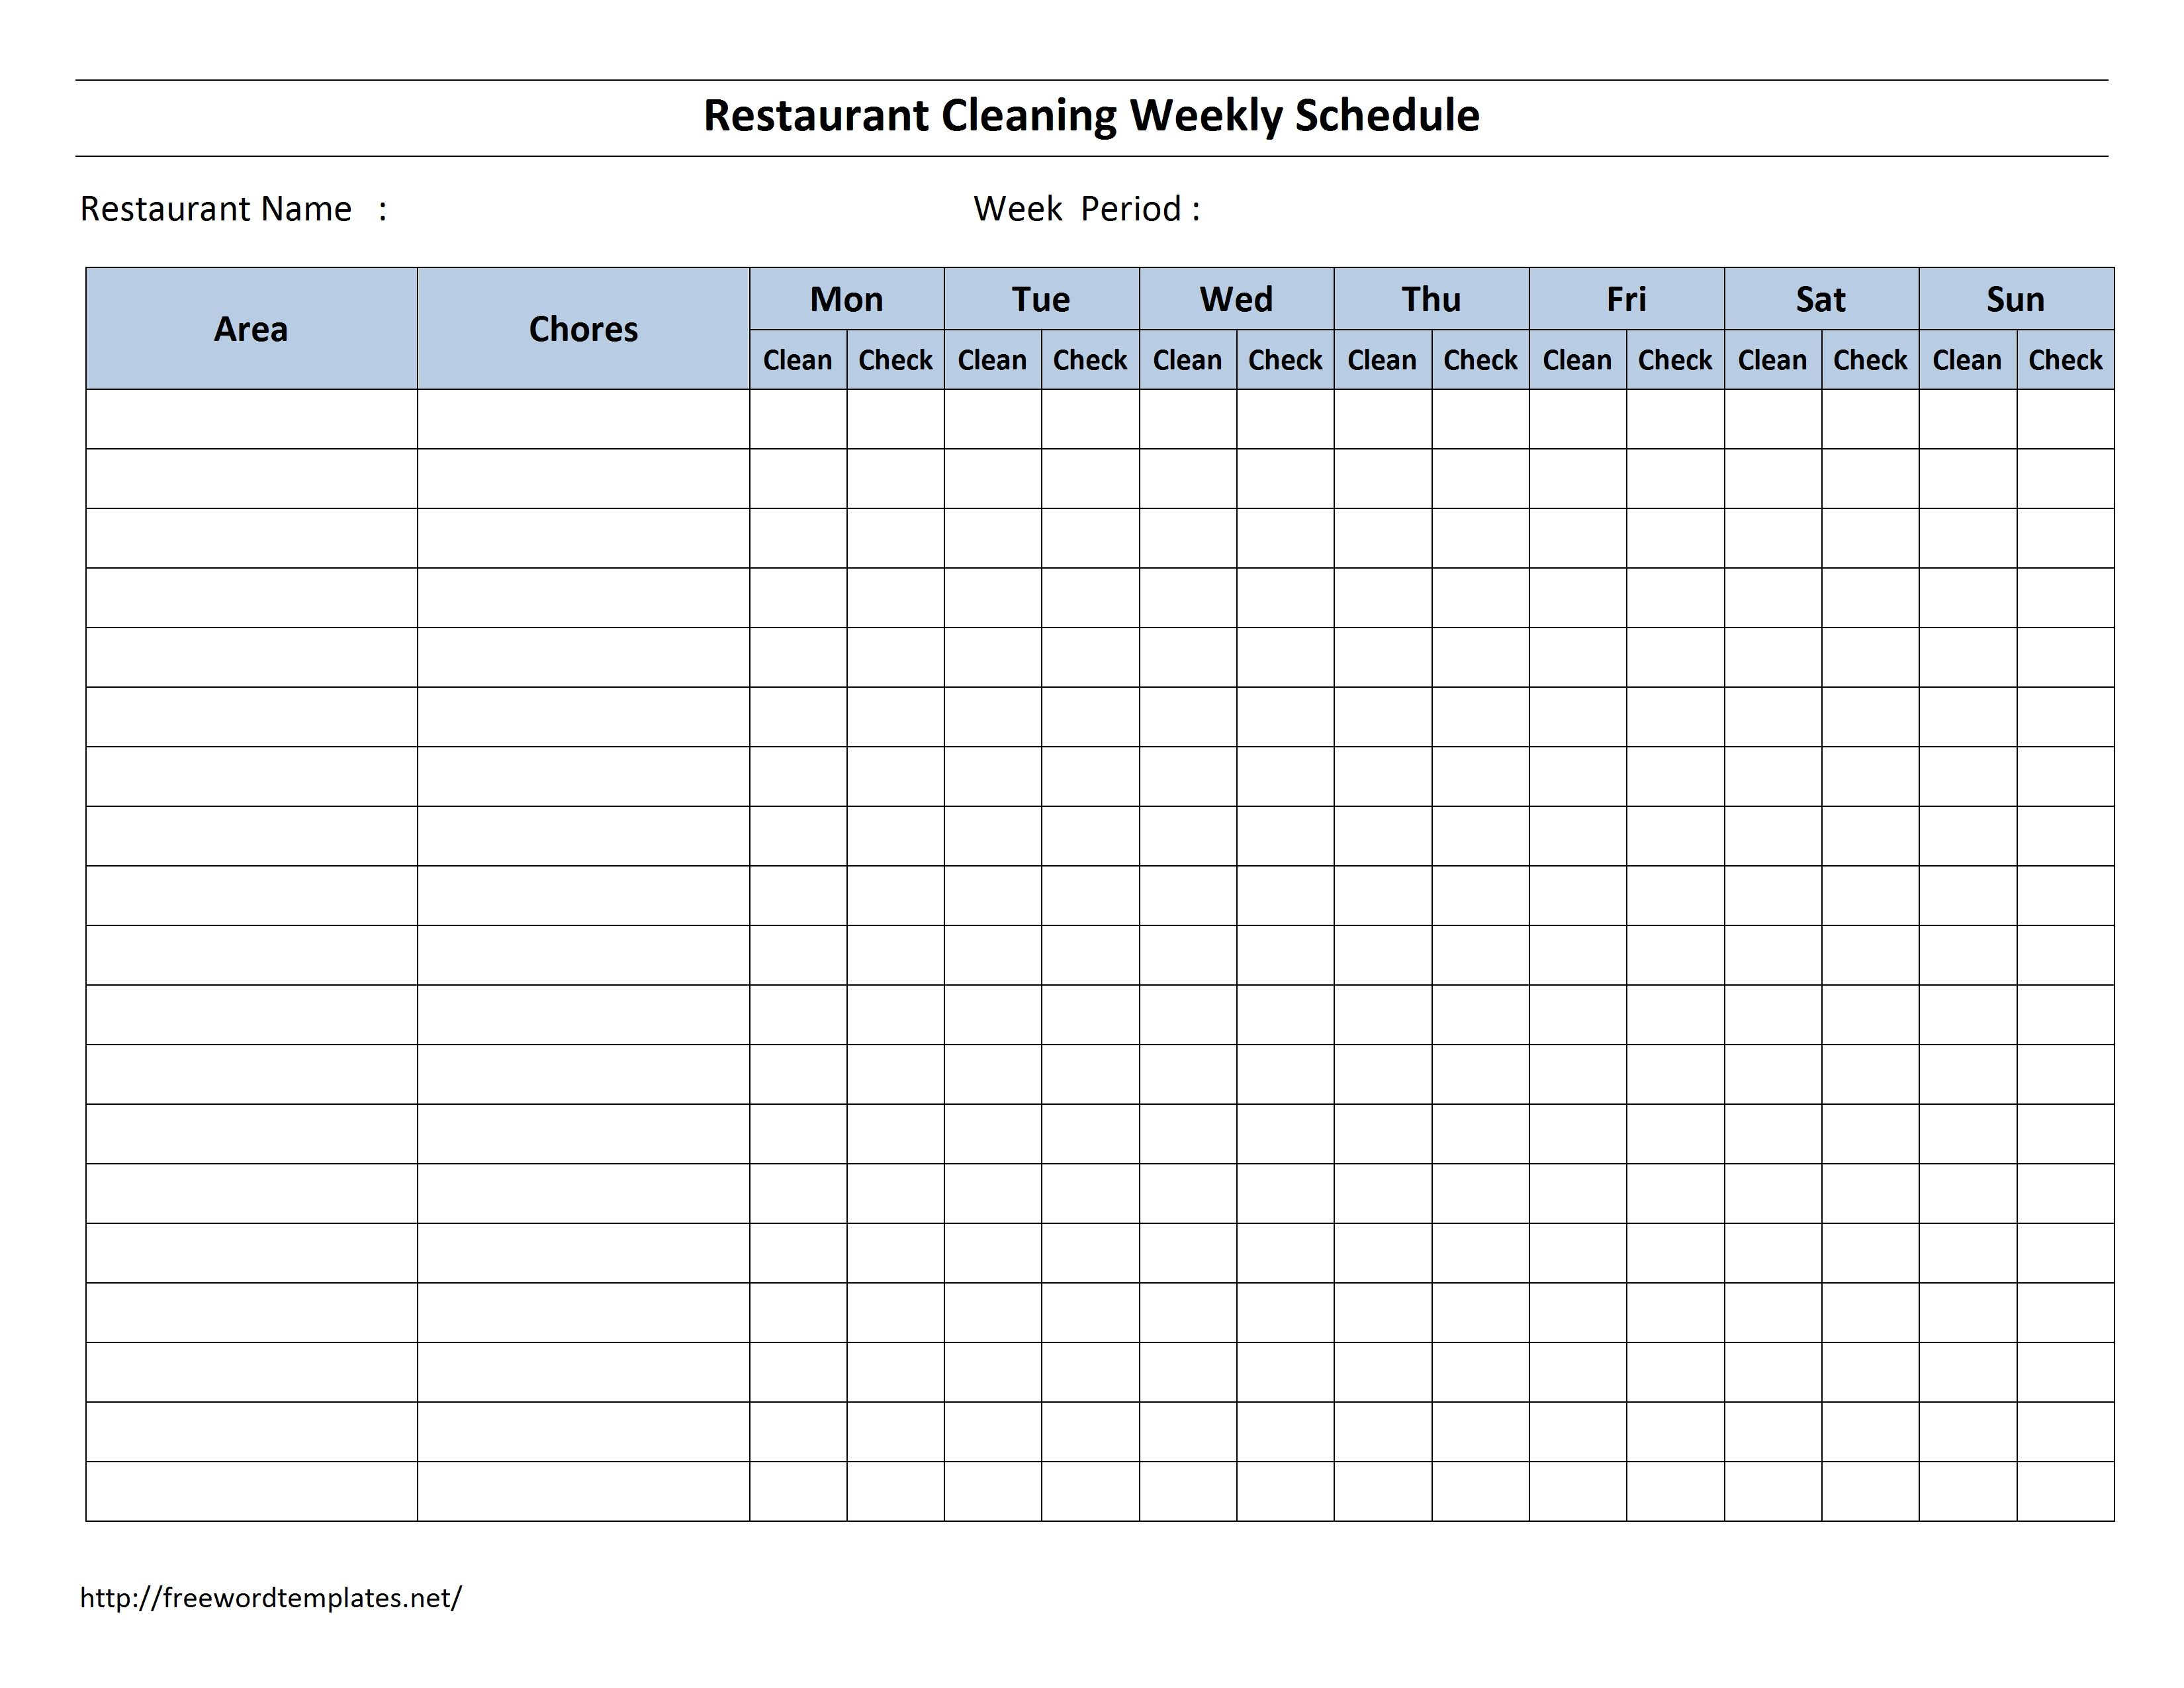 Free Cleaning Schedule Forms | excel format and payroll areas for